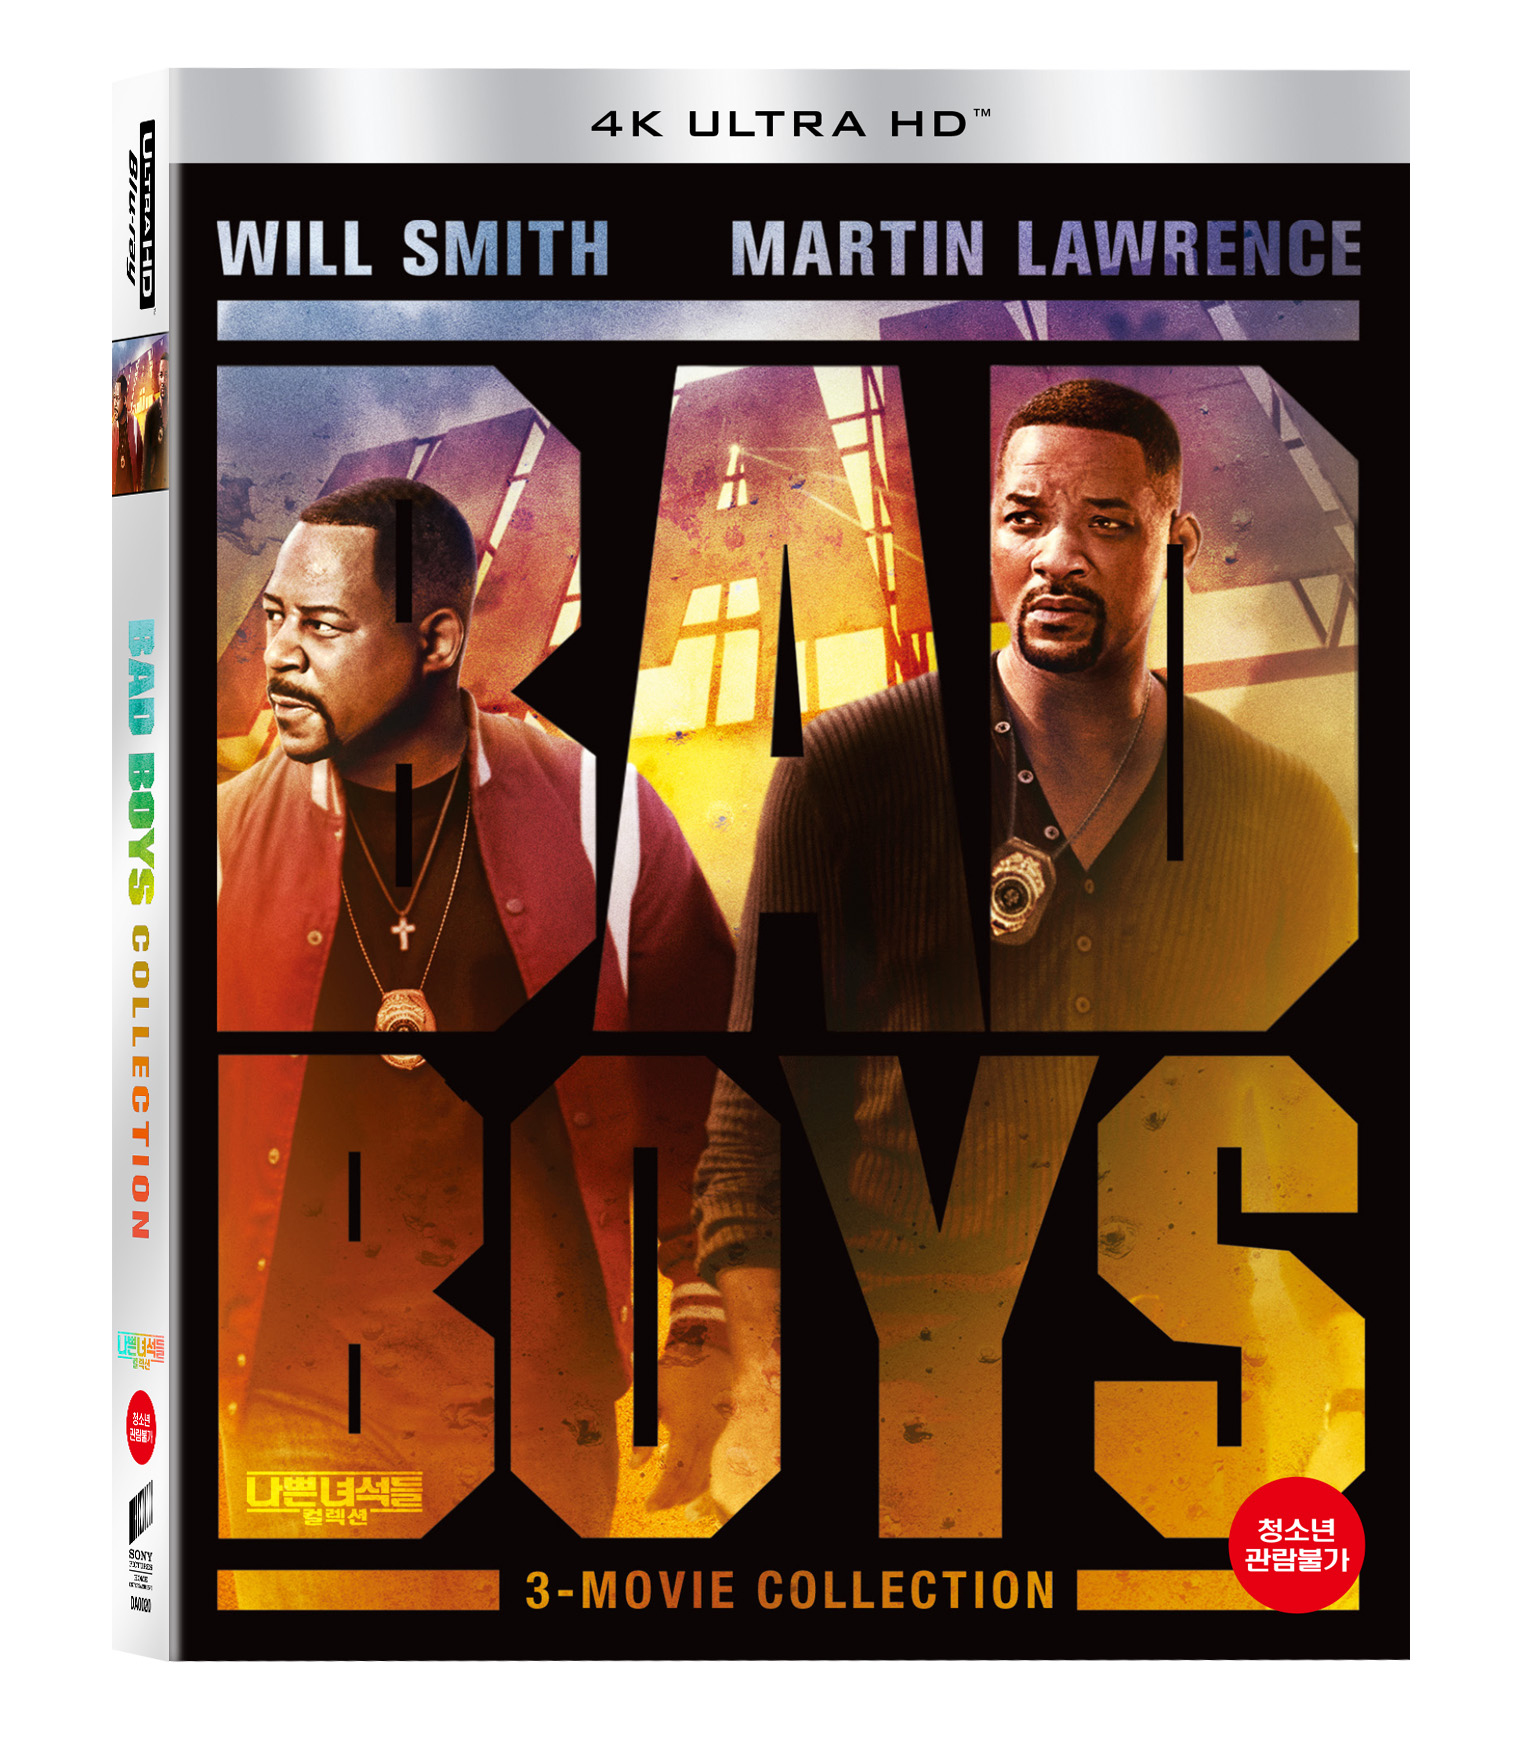 [Blu-ray] Bad Boys Collection 4K UHD(3disc: 3 Movies) Slipcase LE